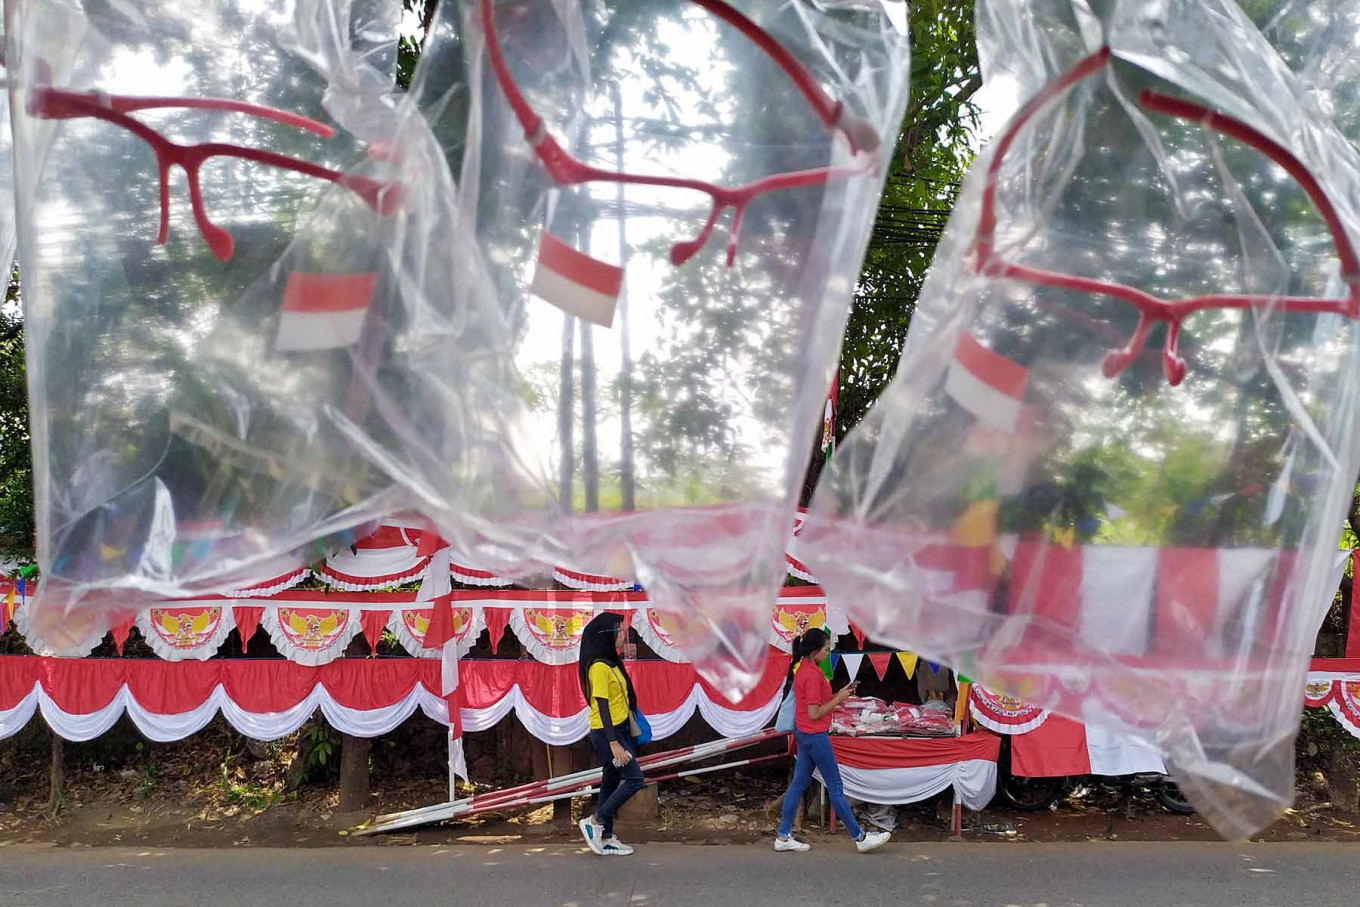 Two women pass by Independence Day-themed decorations in Depok, West Java, on Aug. 10. Although the pandemic still shows no signs of slowing down, some communities are still eager to hold festive Independence Day celebrations.